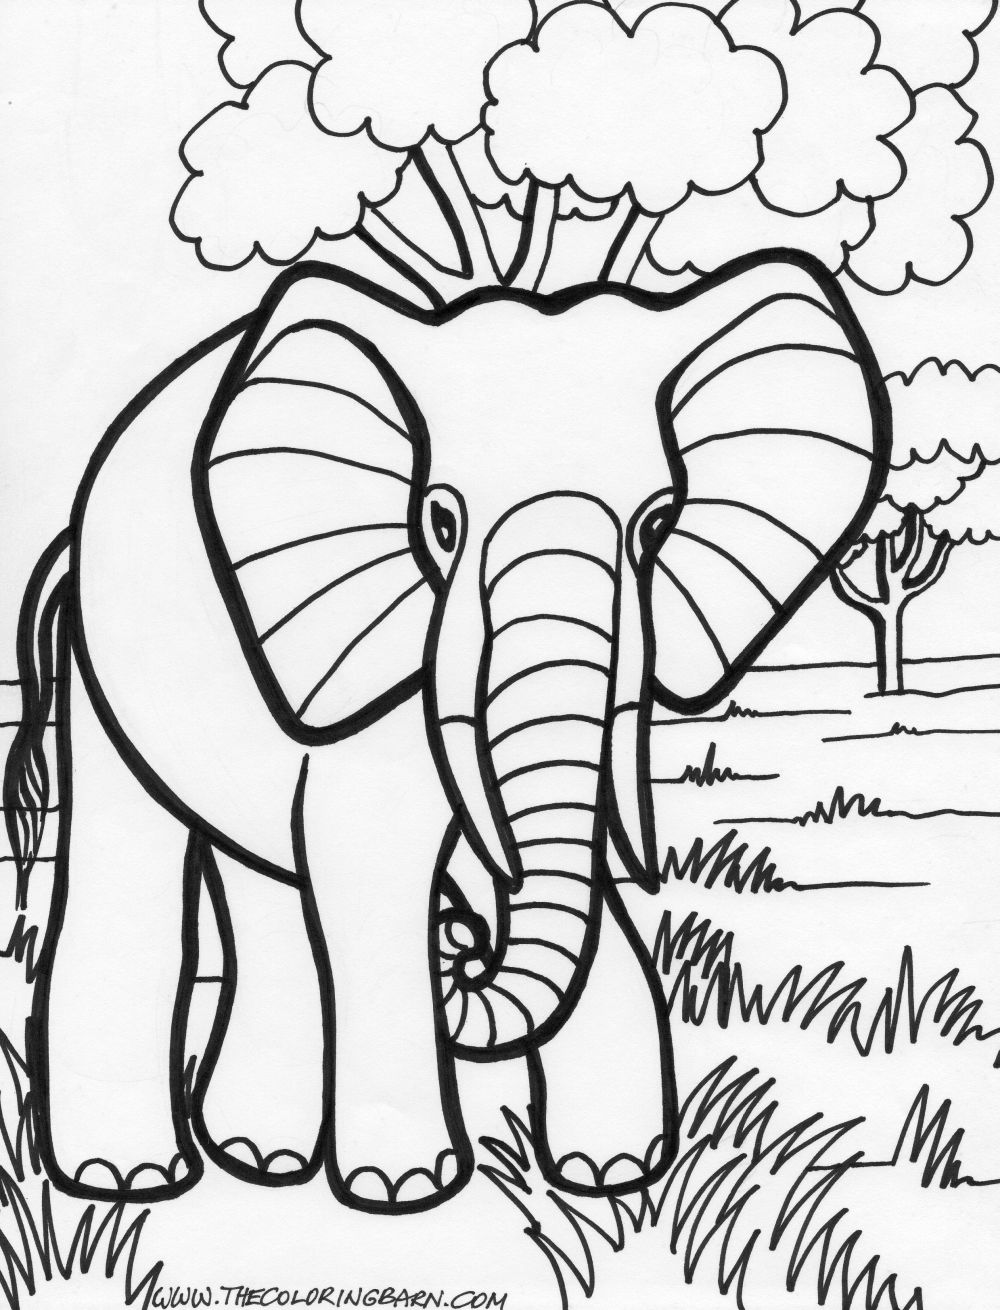 coloring pages elephants free elephant coloring pages elephants coloring pages